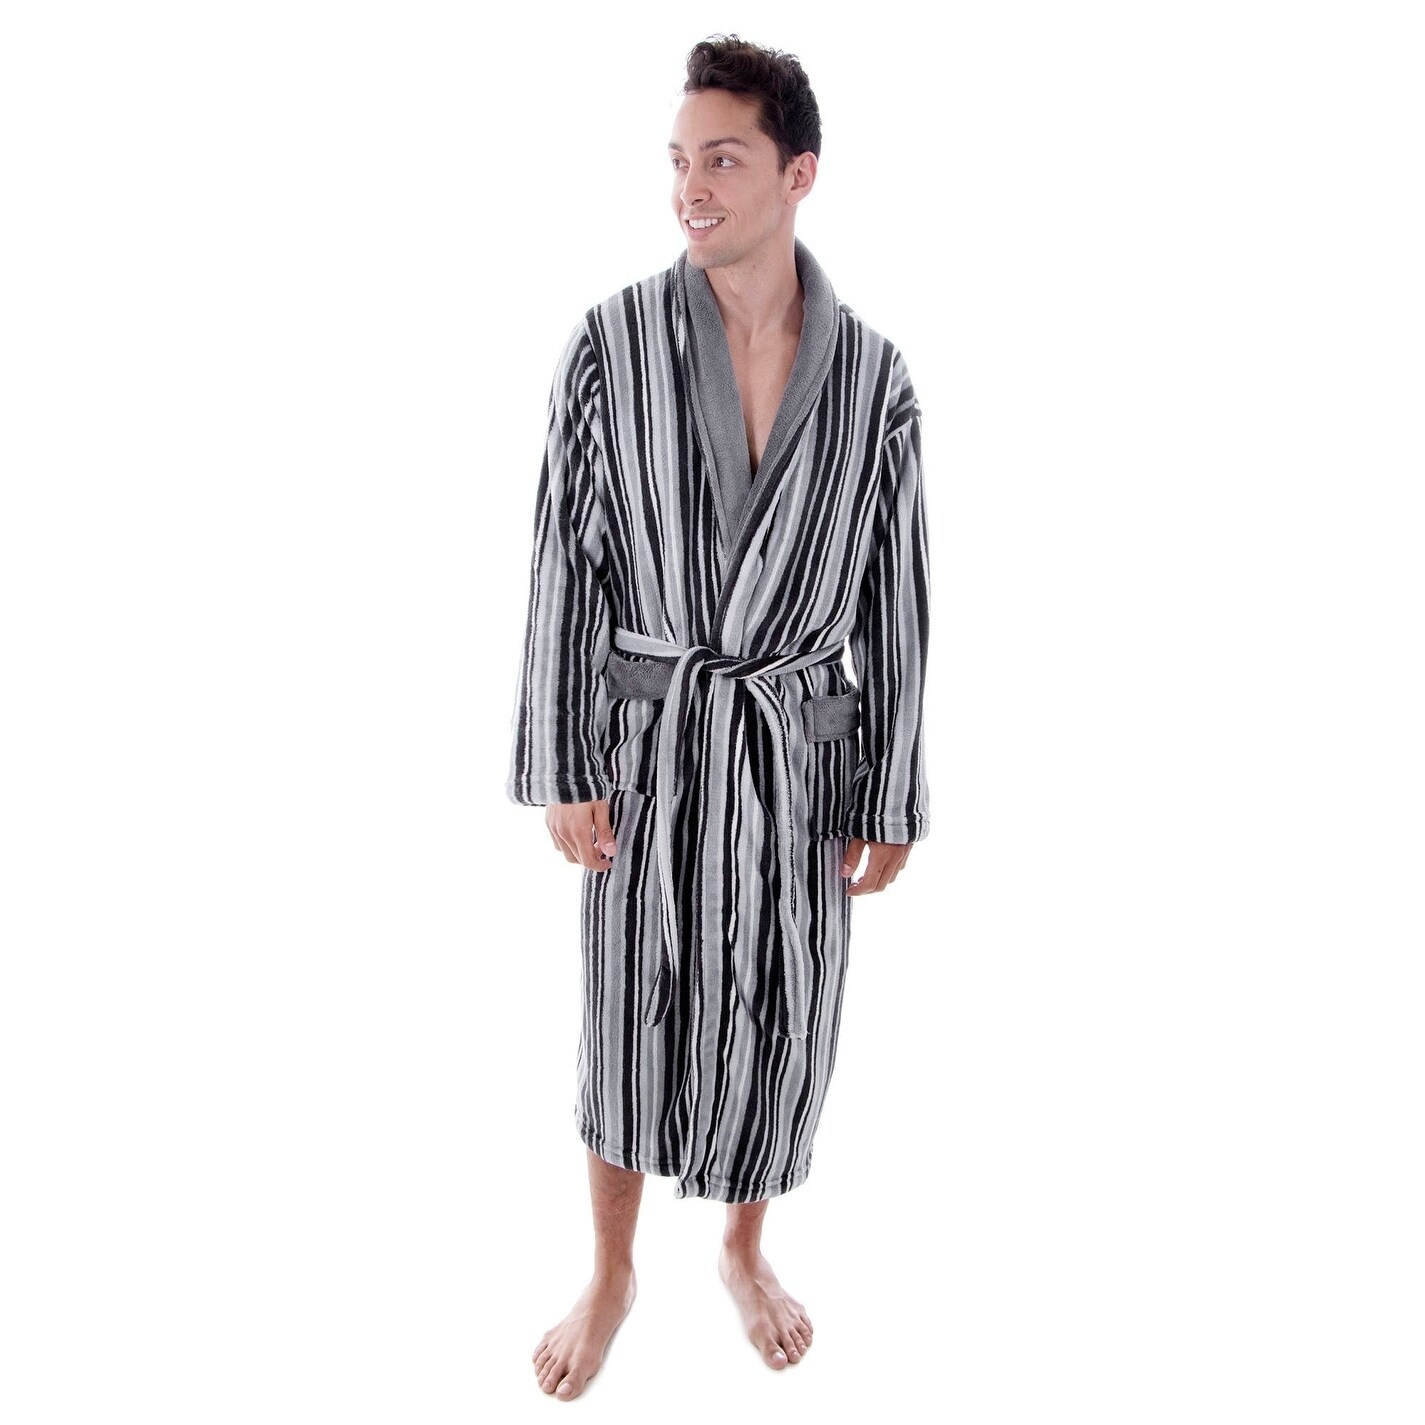 Shop Men s Hotel Fleece Terry Pocketed Bathrobe with Hood - On Sale - Free  Shipping Today - Overstock - 18128578 ccfa46c3c